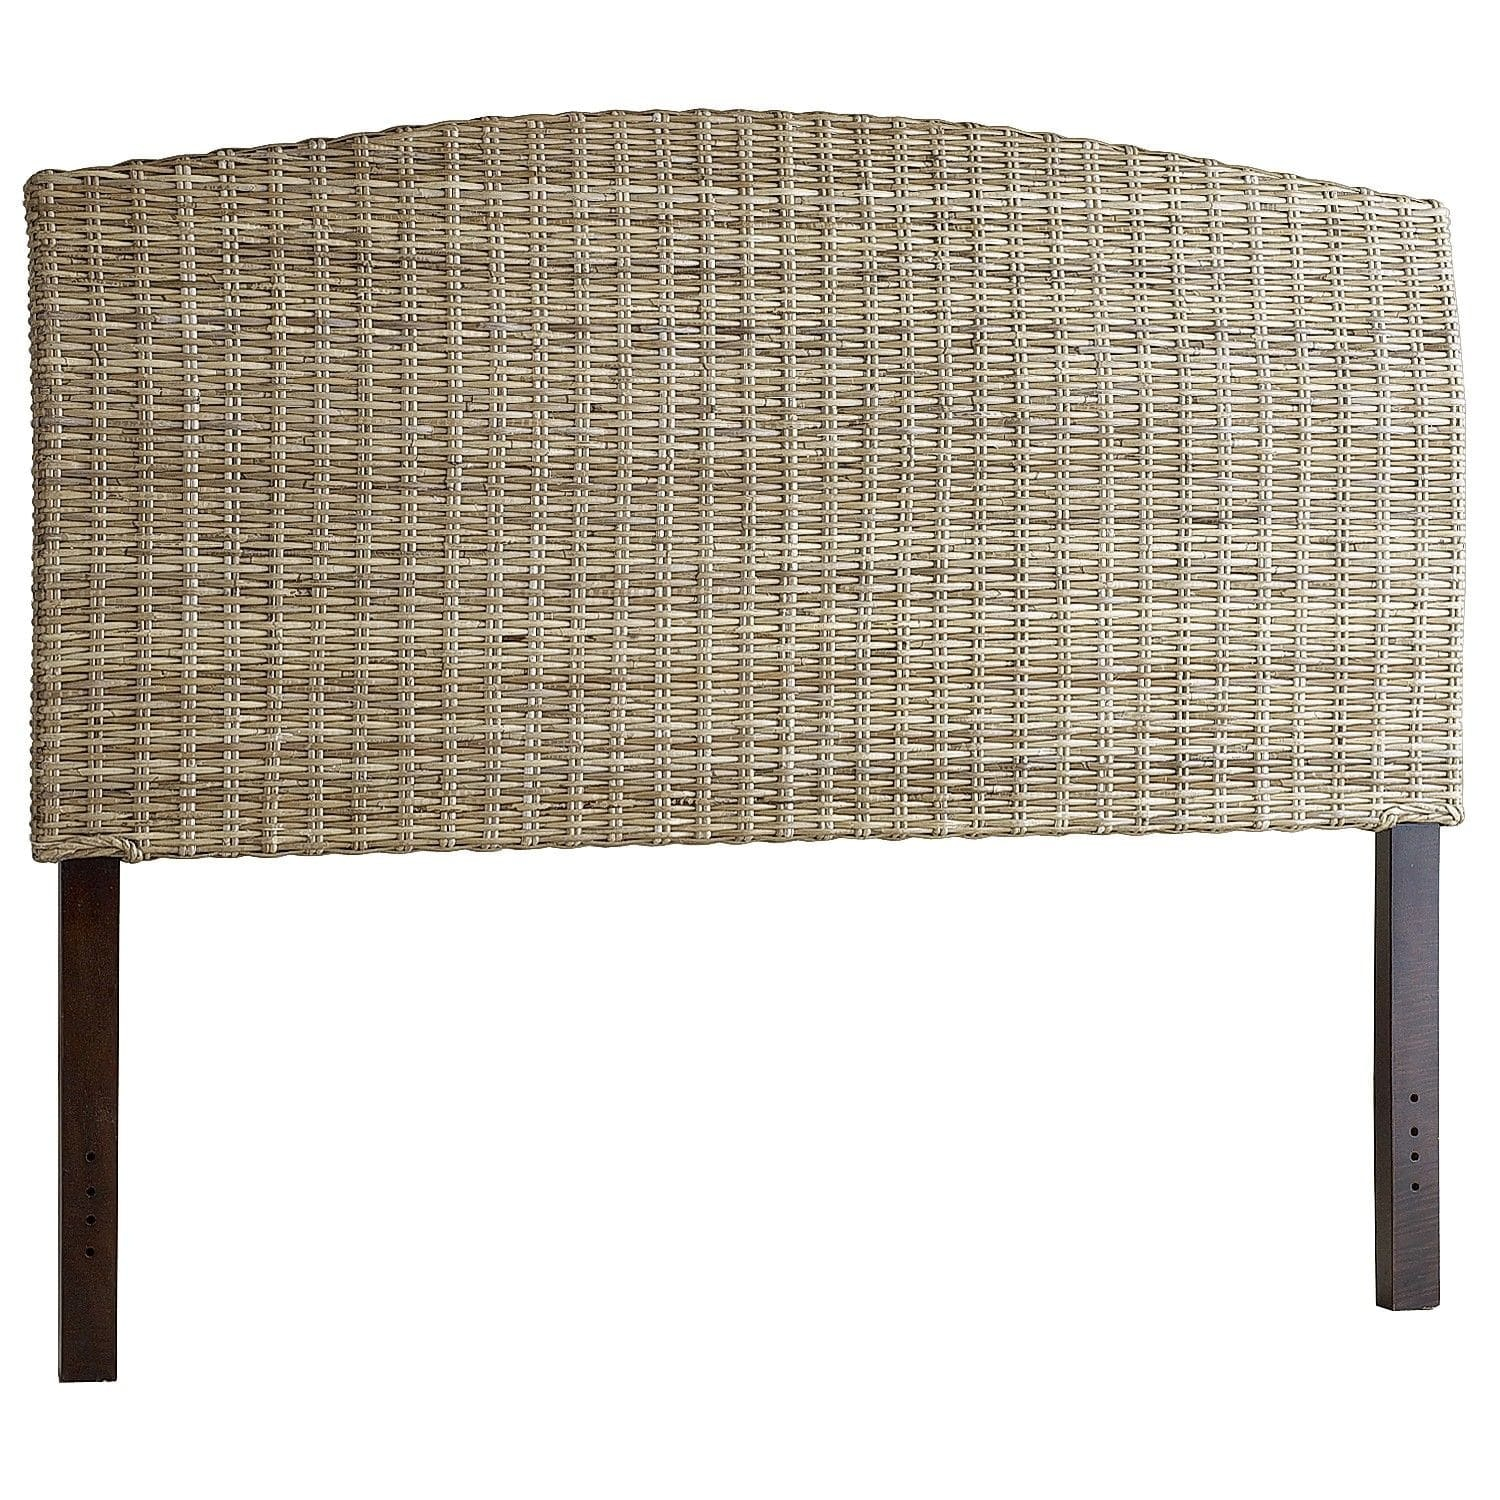 Pier One Wicker Bedroom Furniture | Pier One Wicker Furniture | Peir One Furniture